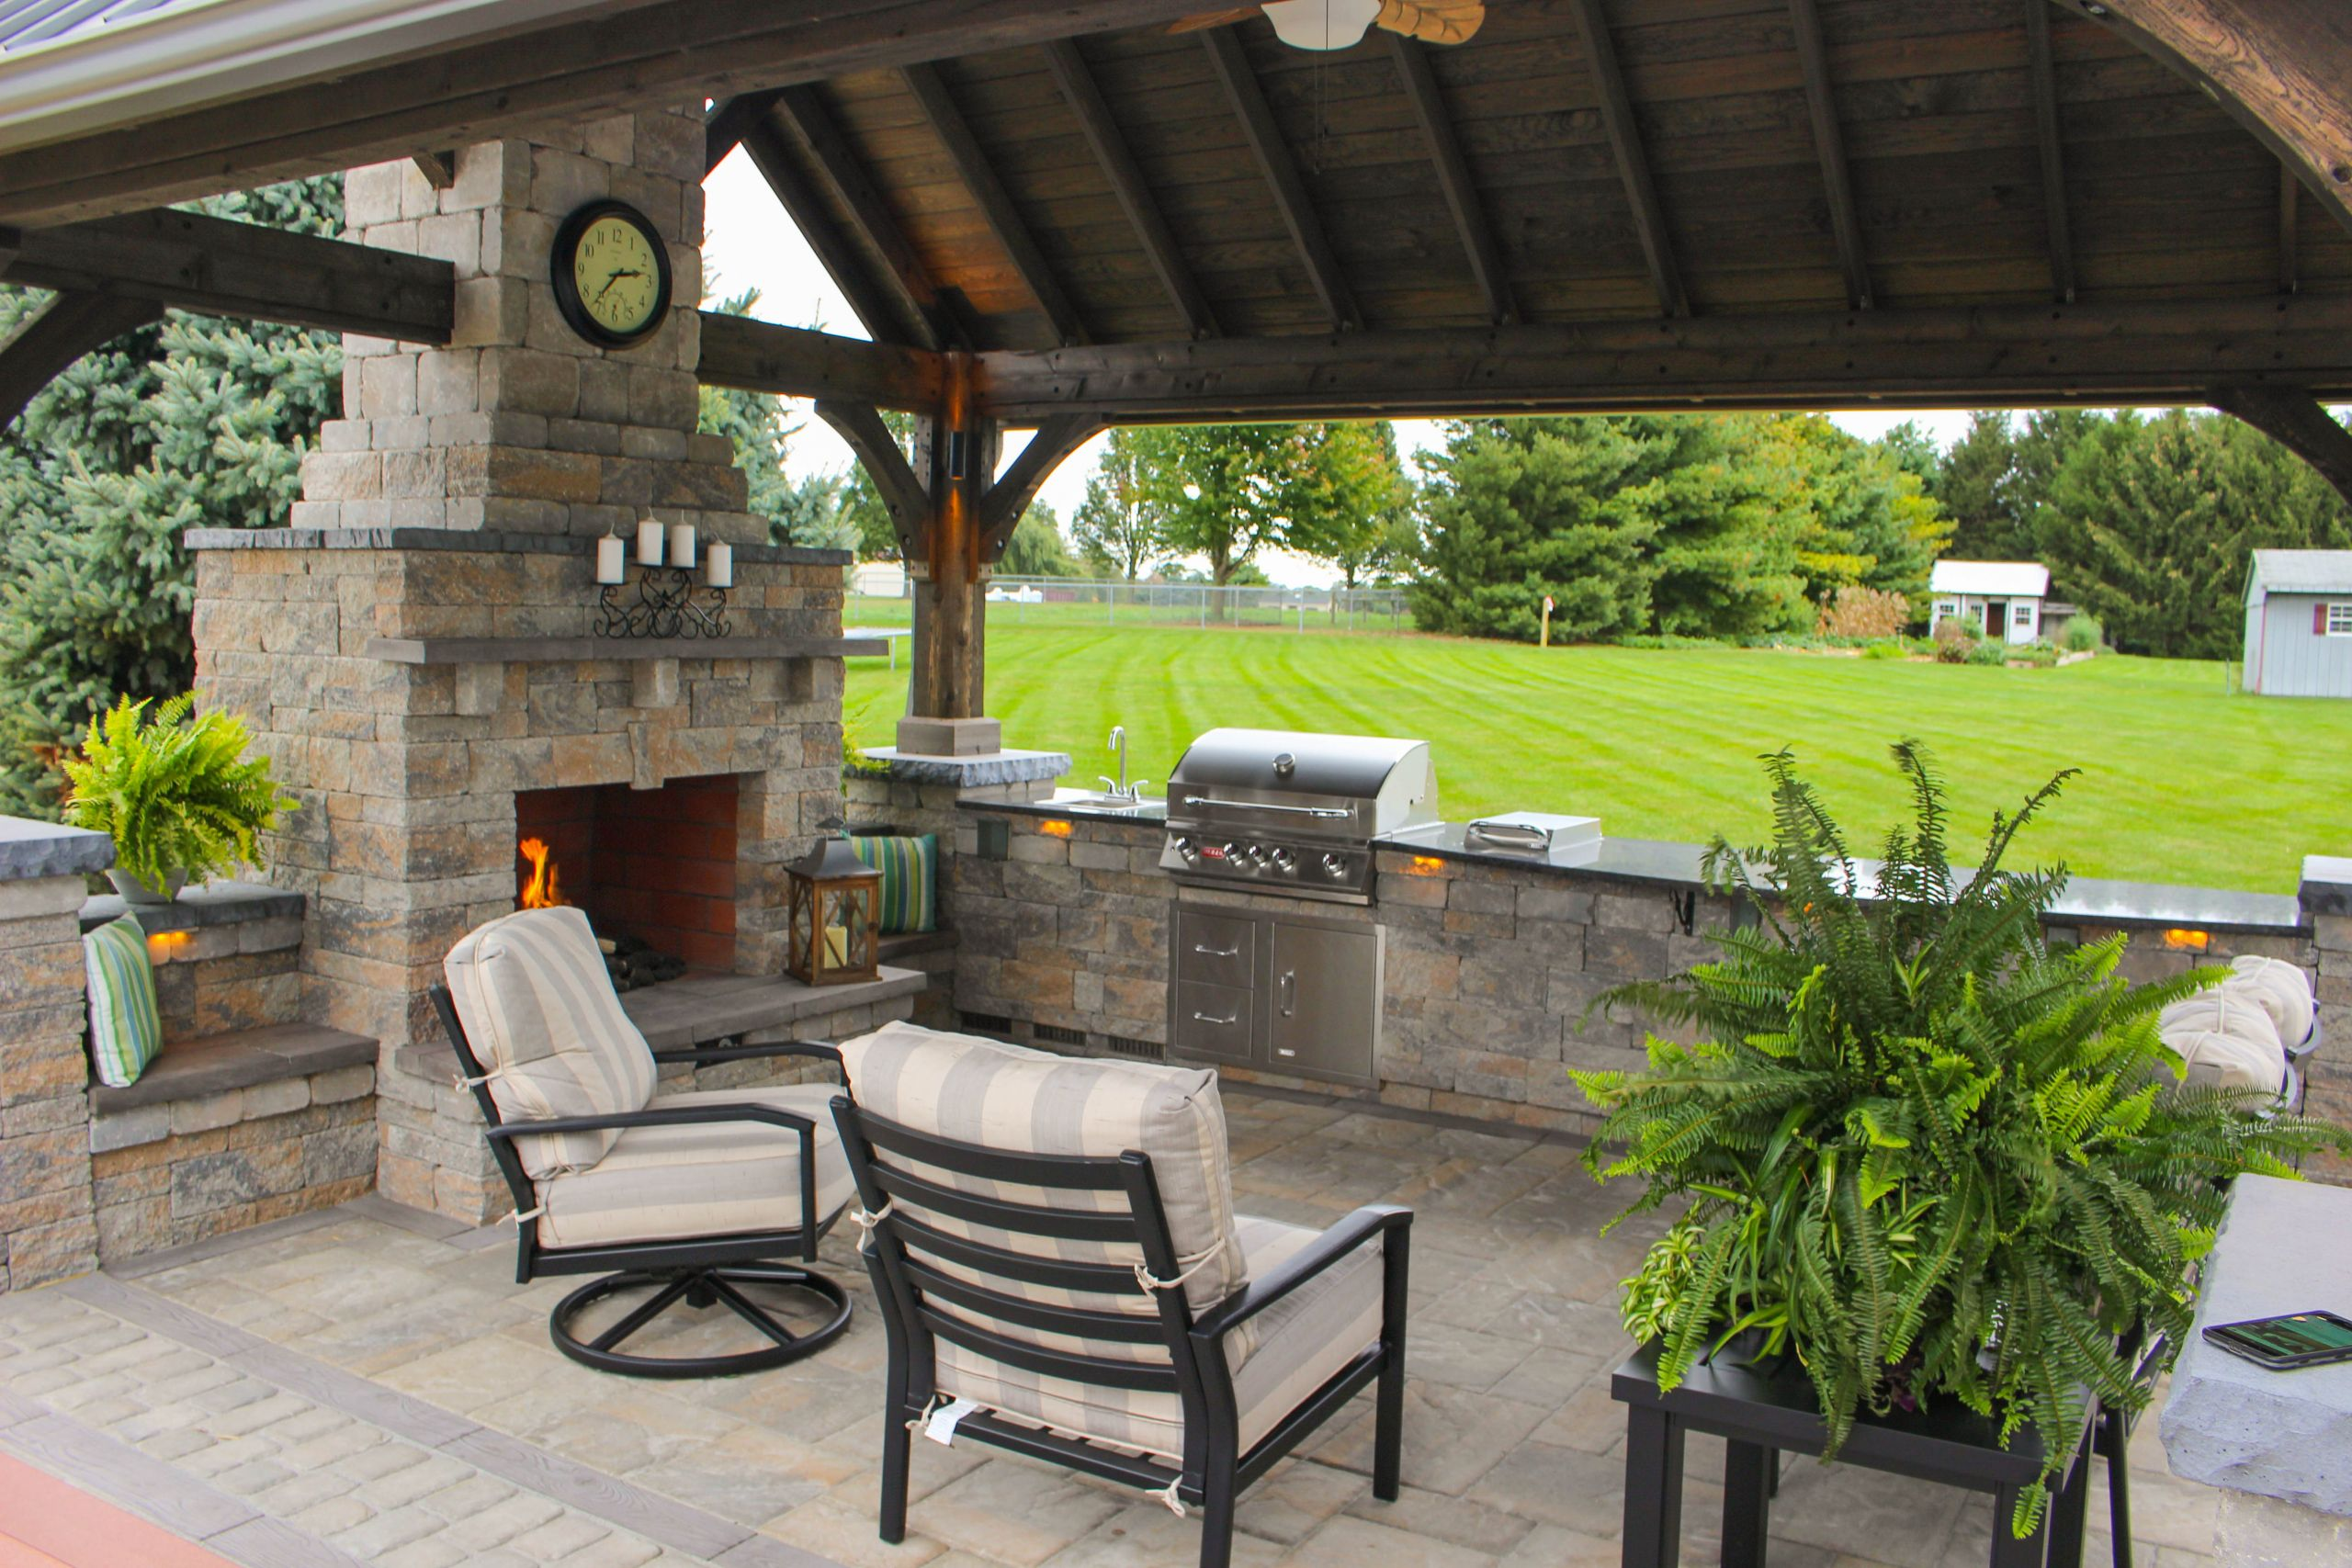 Outdoor Kitchen Deck  Outdoor Patio with Pavilion